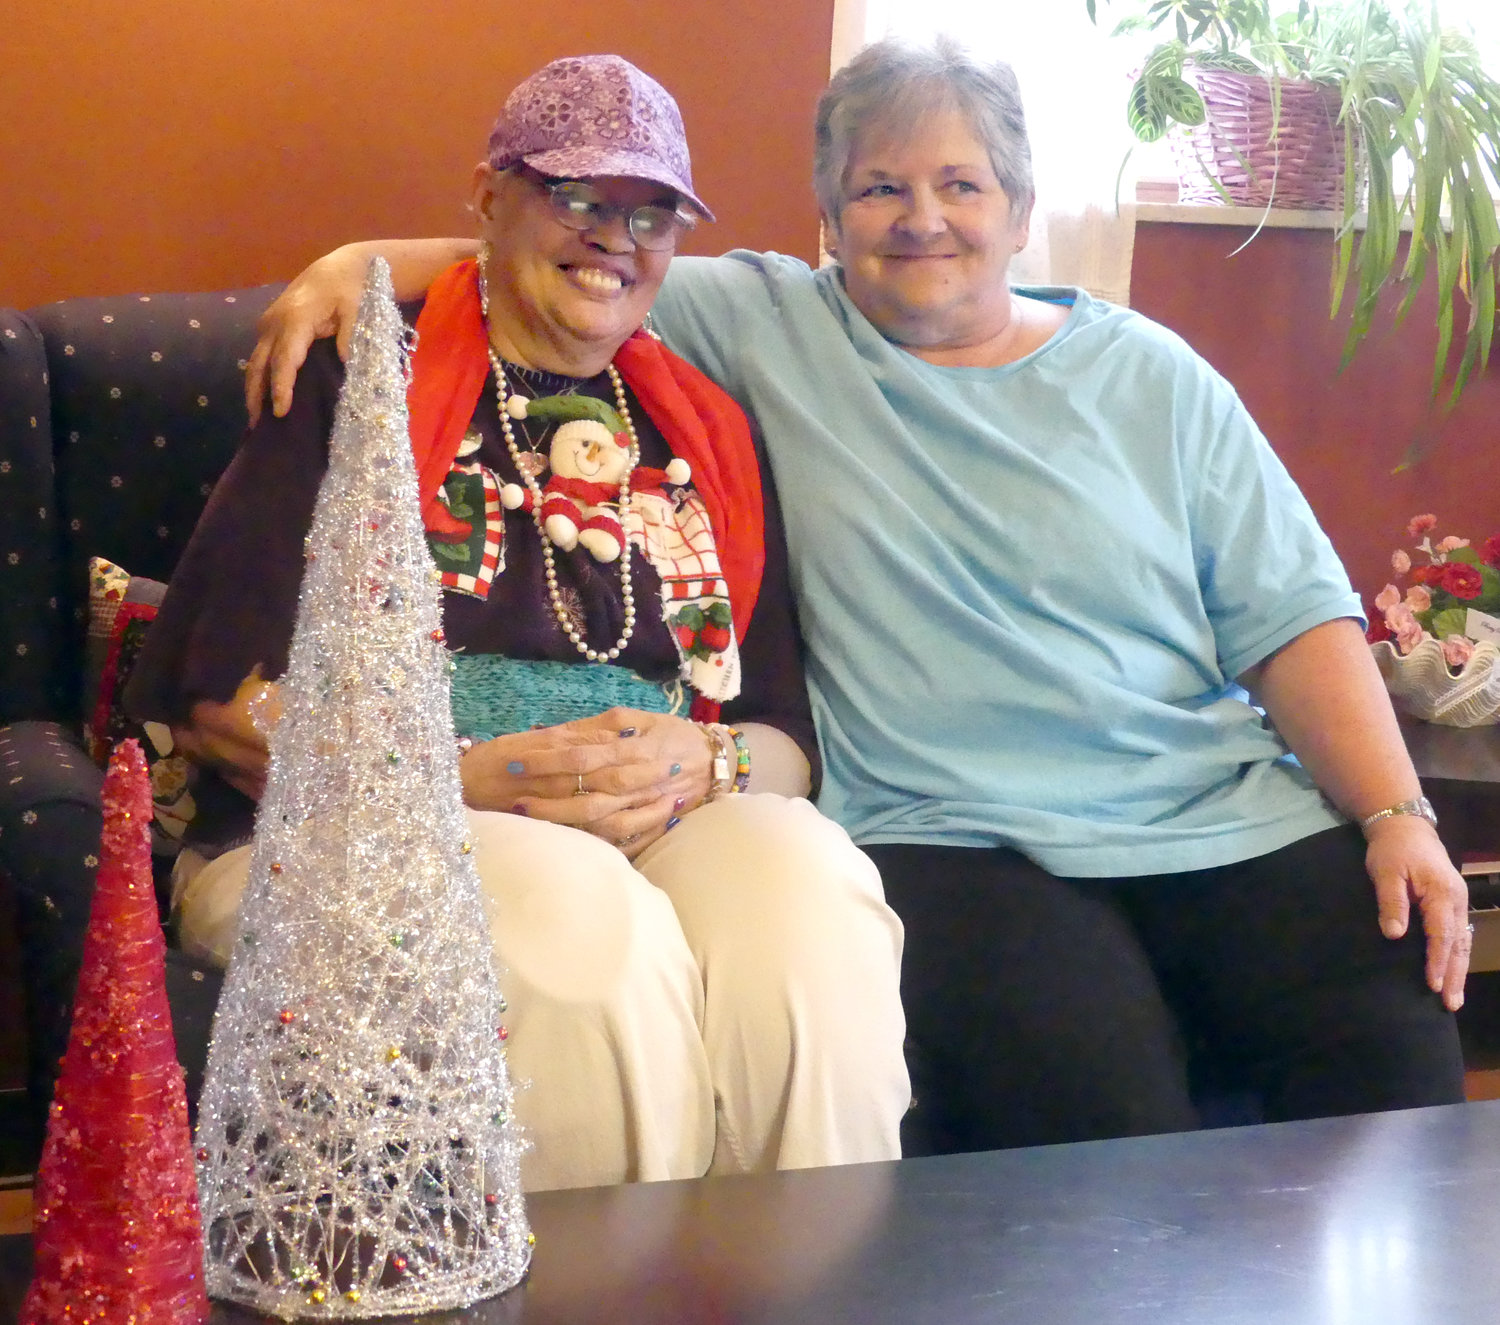 BEST BUDDIES — Both Mary Hammond of Utica, left, and Beverly Saxe, of New Hartford, are members of the Adult Daycare program at LutheranCare in Clinton. Hammond happened to be the winner last Tuesday of the Ugly Christmas Sweater Contest, which is just one of several group activities the program offers.